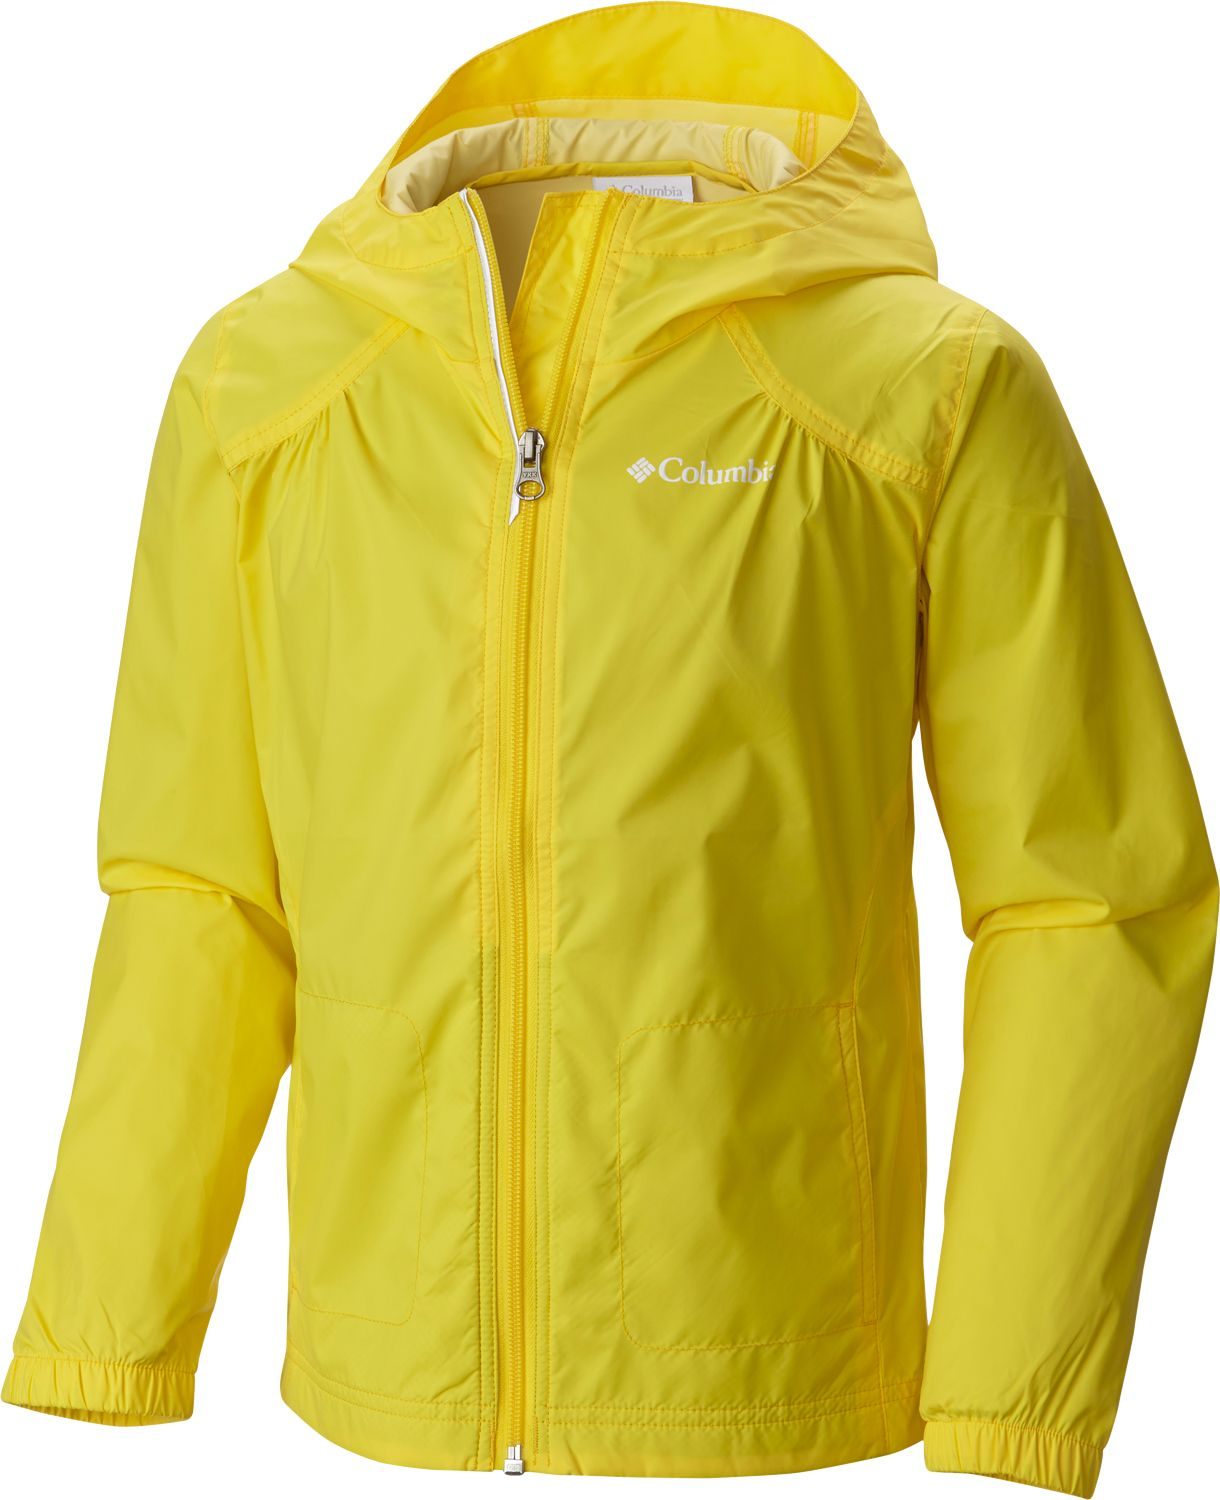 Columbia Toddler Girls' Switchback Rain Jacket | DICK'S Sporting Goods